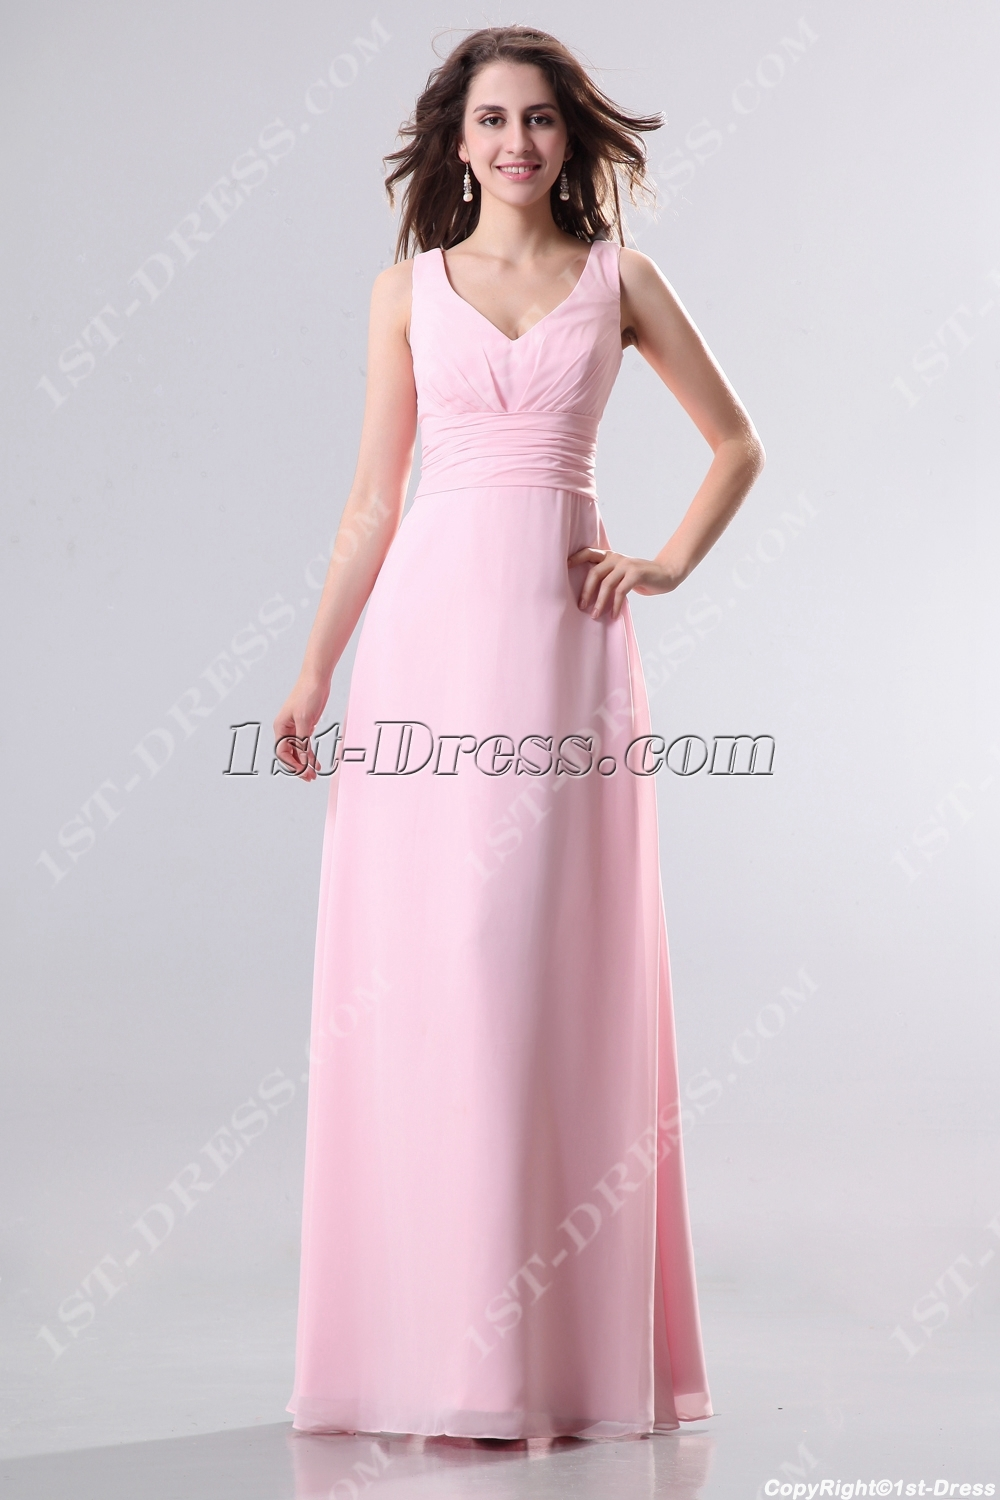 images/201311/big/Pink-Plus-Size-Homecoming-Dress-with-V-Neckline-3494-b-1-1384265277.jpg